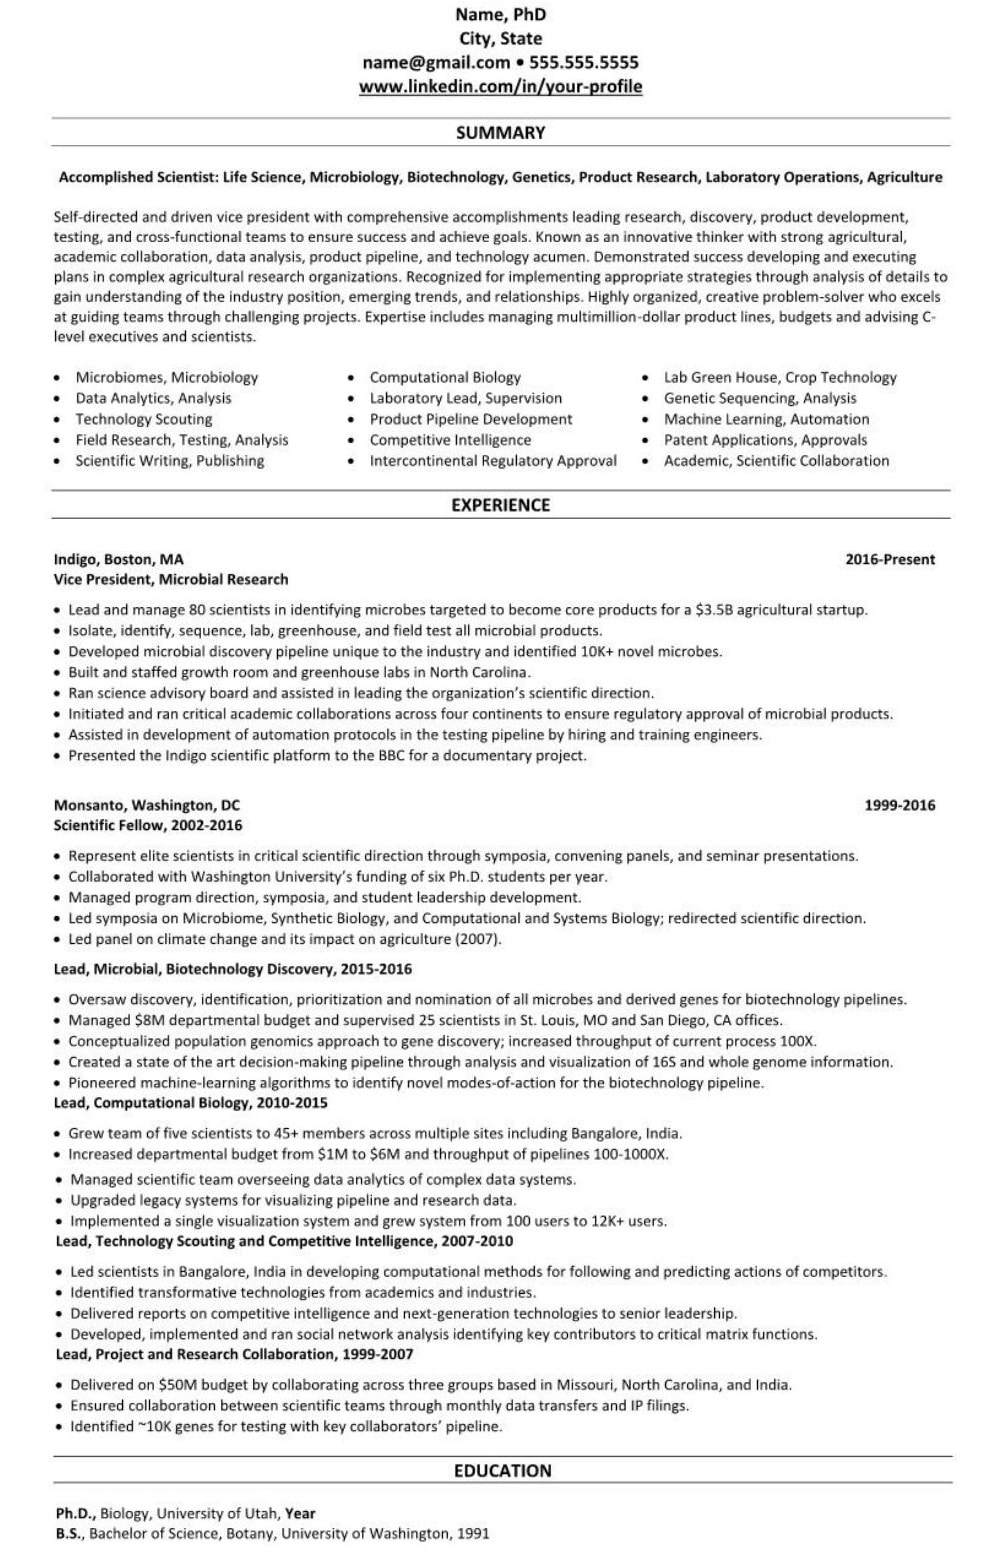 biotechnology life science professional executive resume example 2387